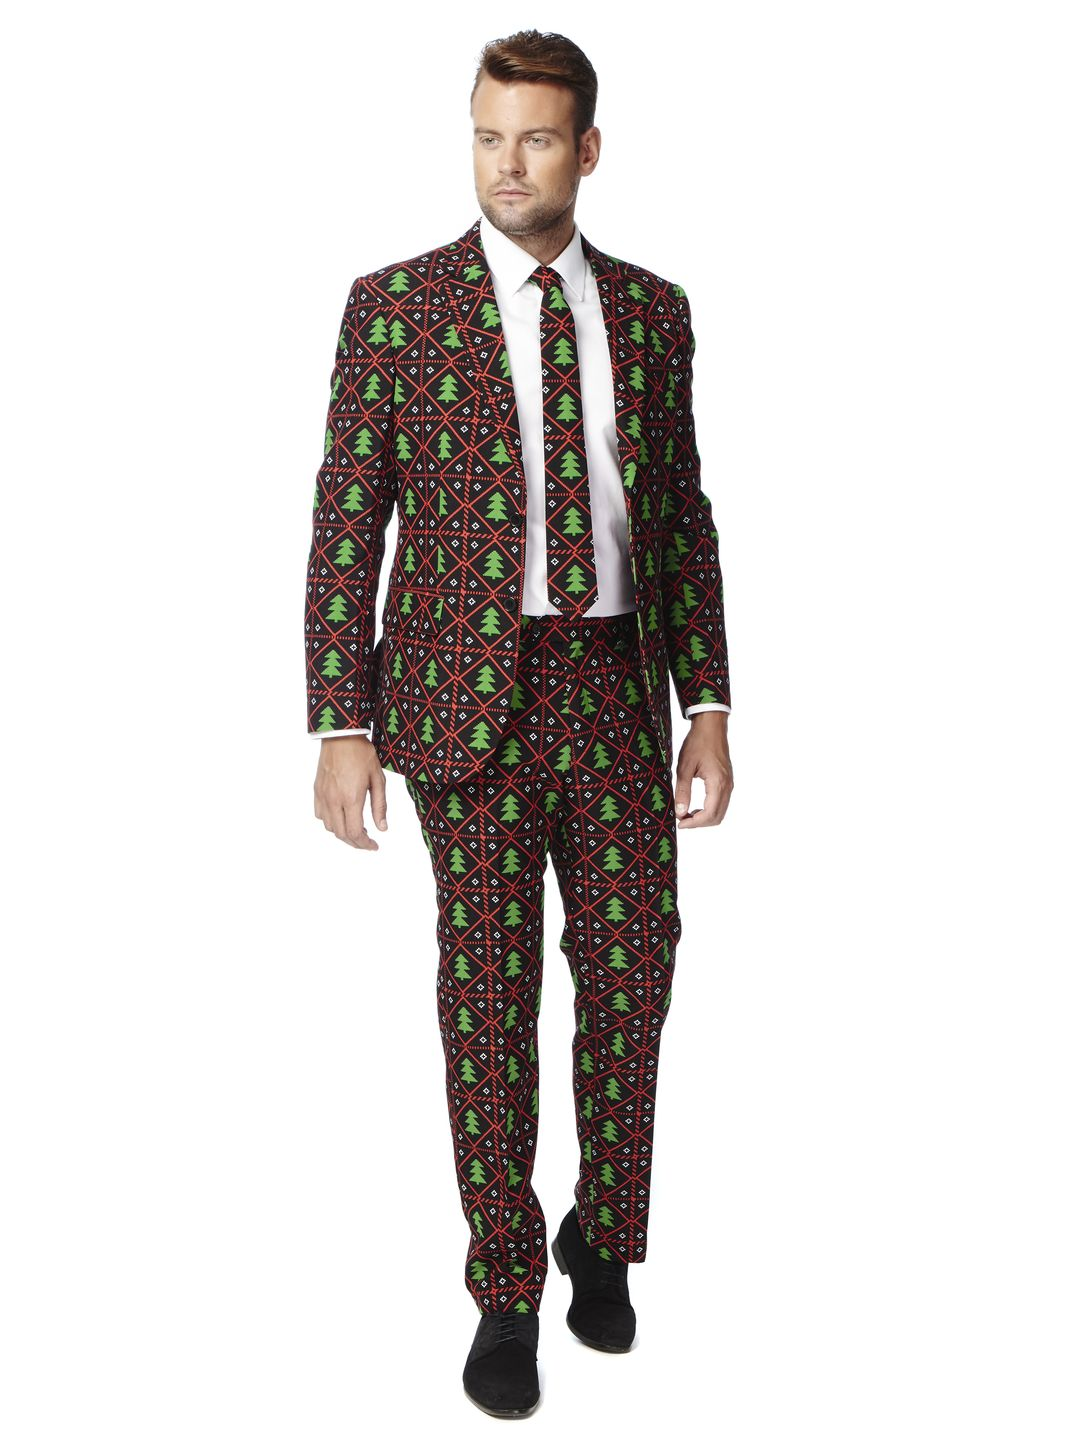 Macy's Christmas Suits a Hot Trend in 2015 - My Merry Christmas